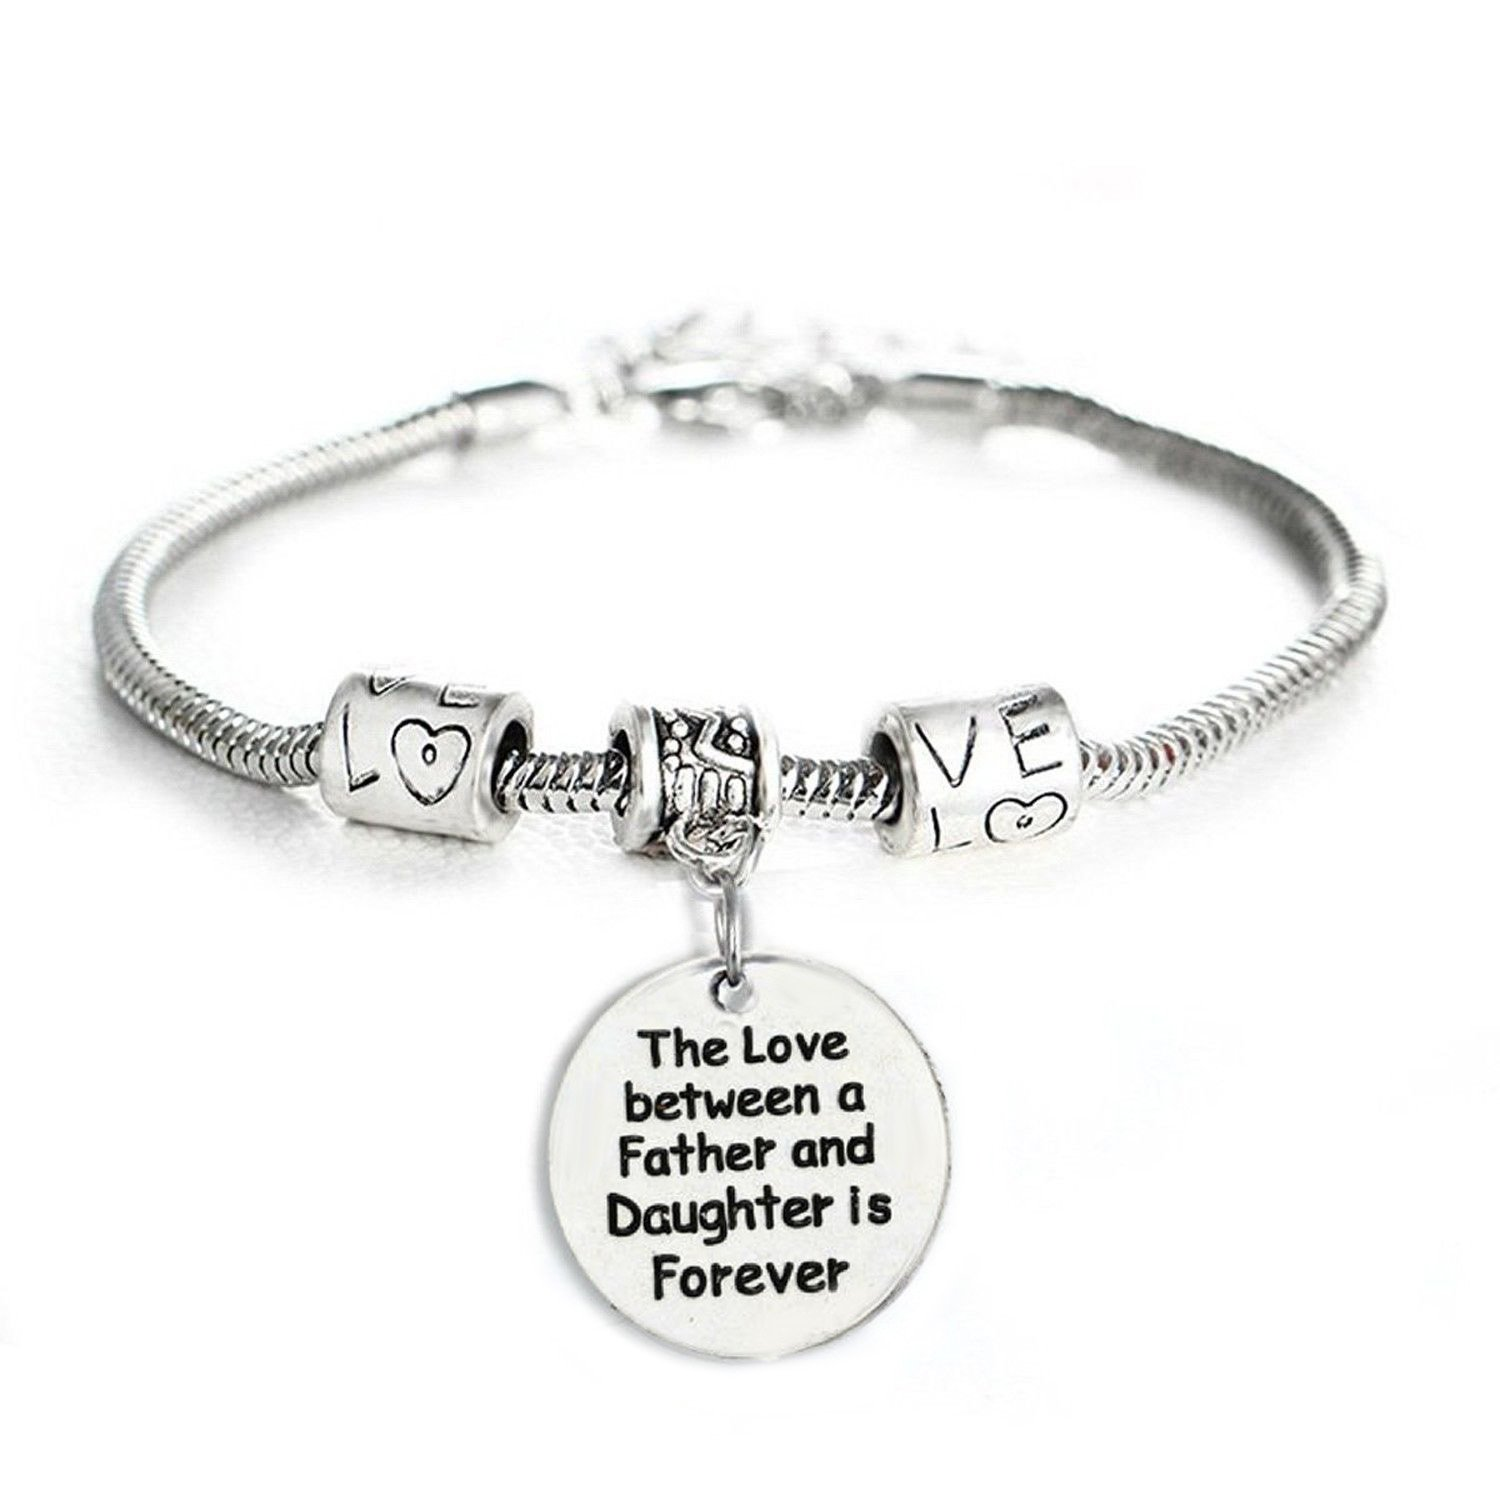 7d4378b83 Beautiful Engraved Pendant Charm Bracelet - Perfect Jewelry Gift for Girl,  Teen, Women, Dad, Birthday - Popular Love Between Father and Daughter  Style: ...